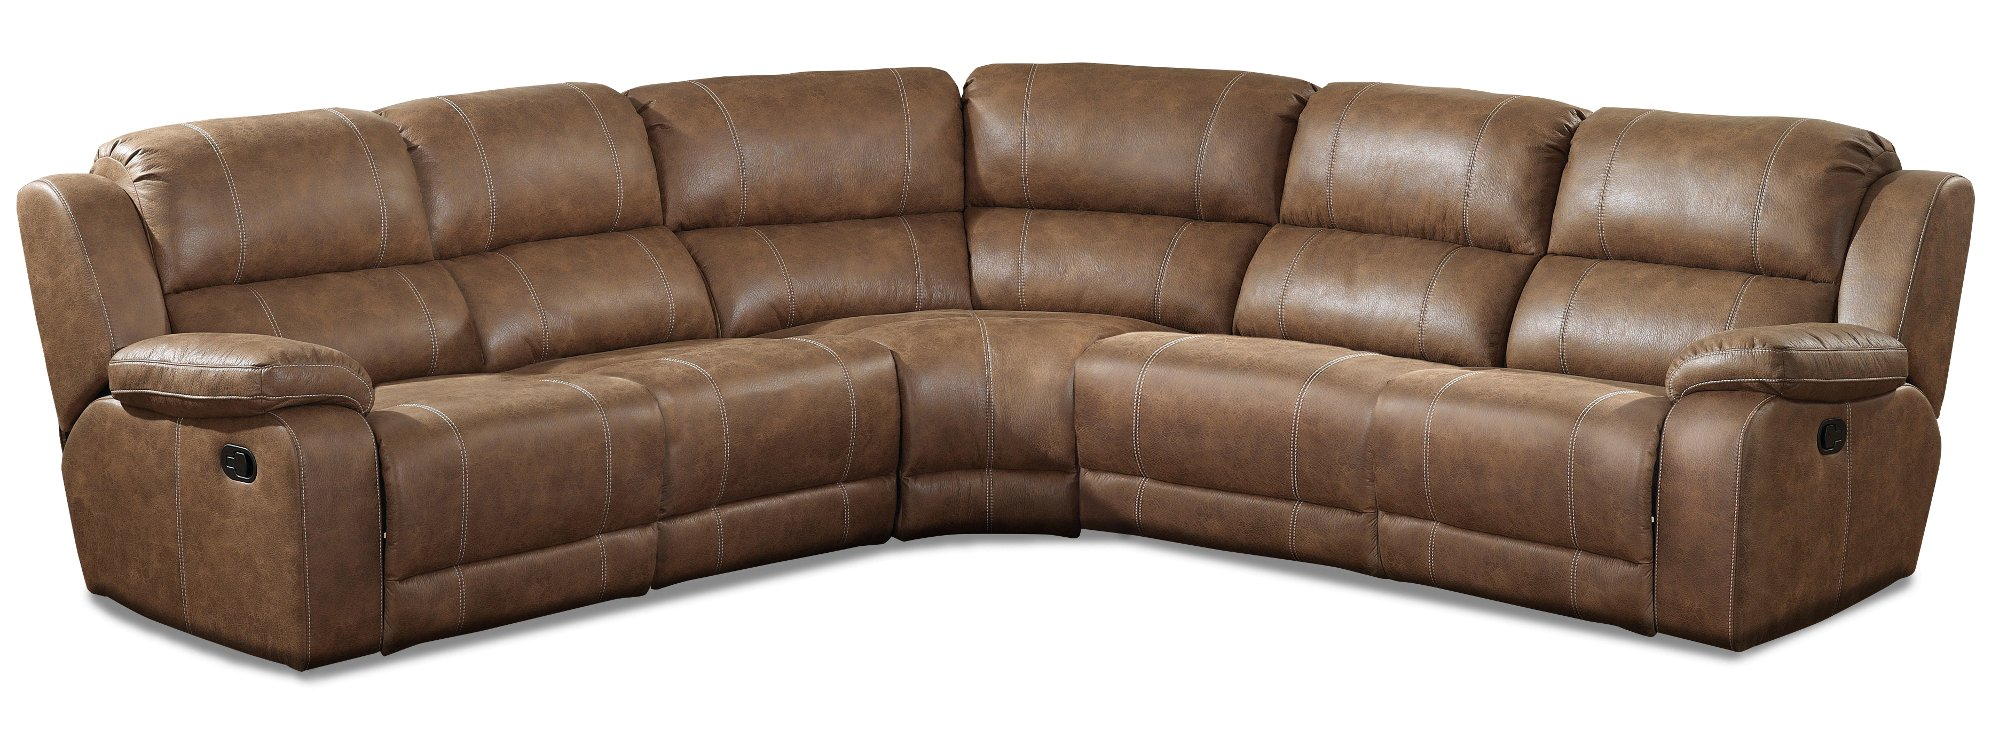 Brown 5-Piece Reclining Sectional - Charlotte  sc 1 st  RC Willey : brown sectional - Sectionals, Sofas & Couches